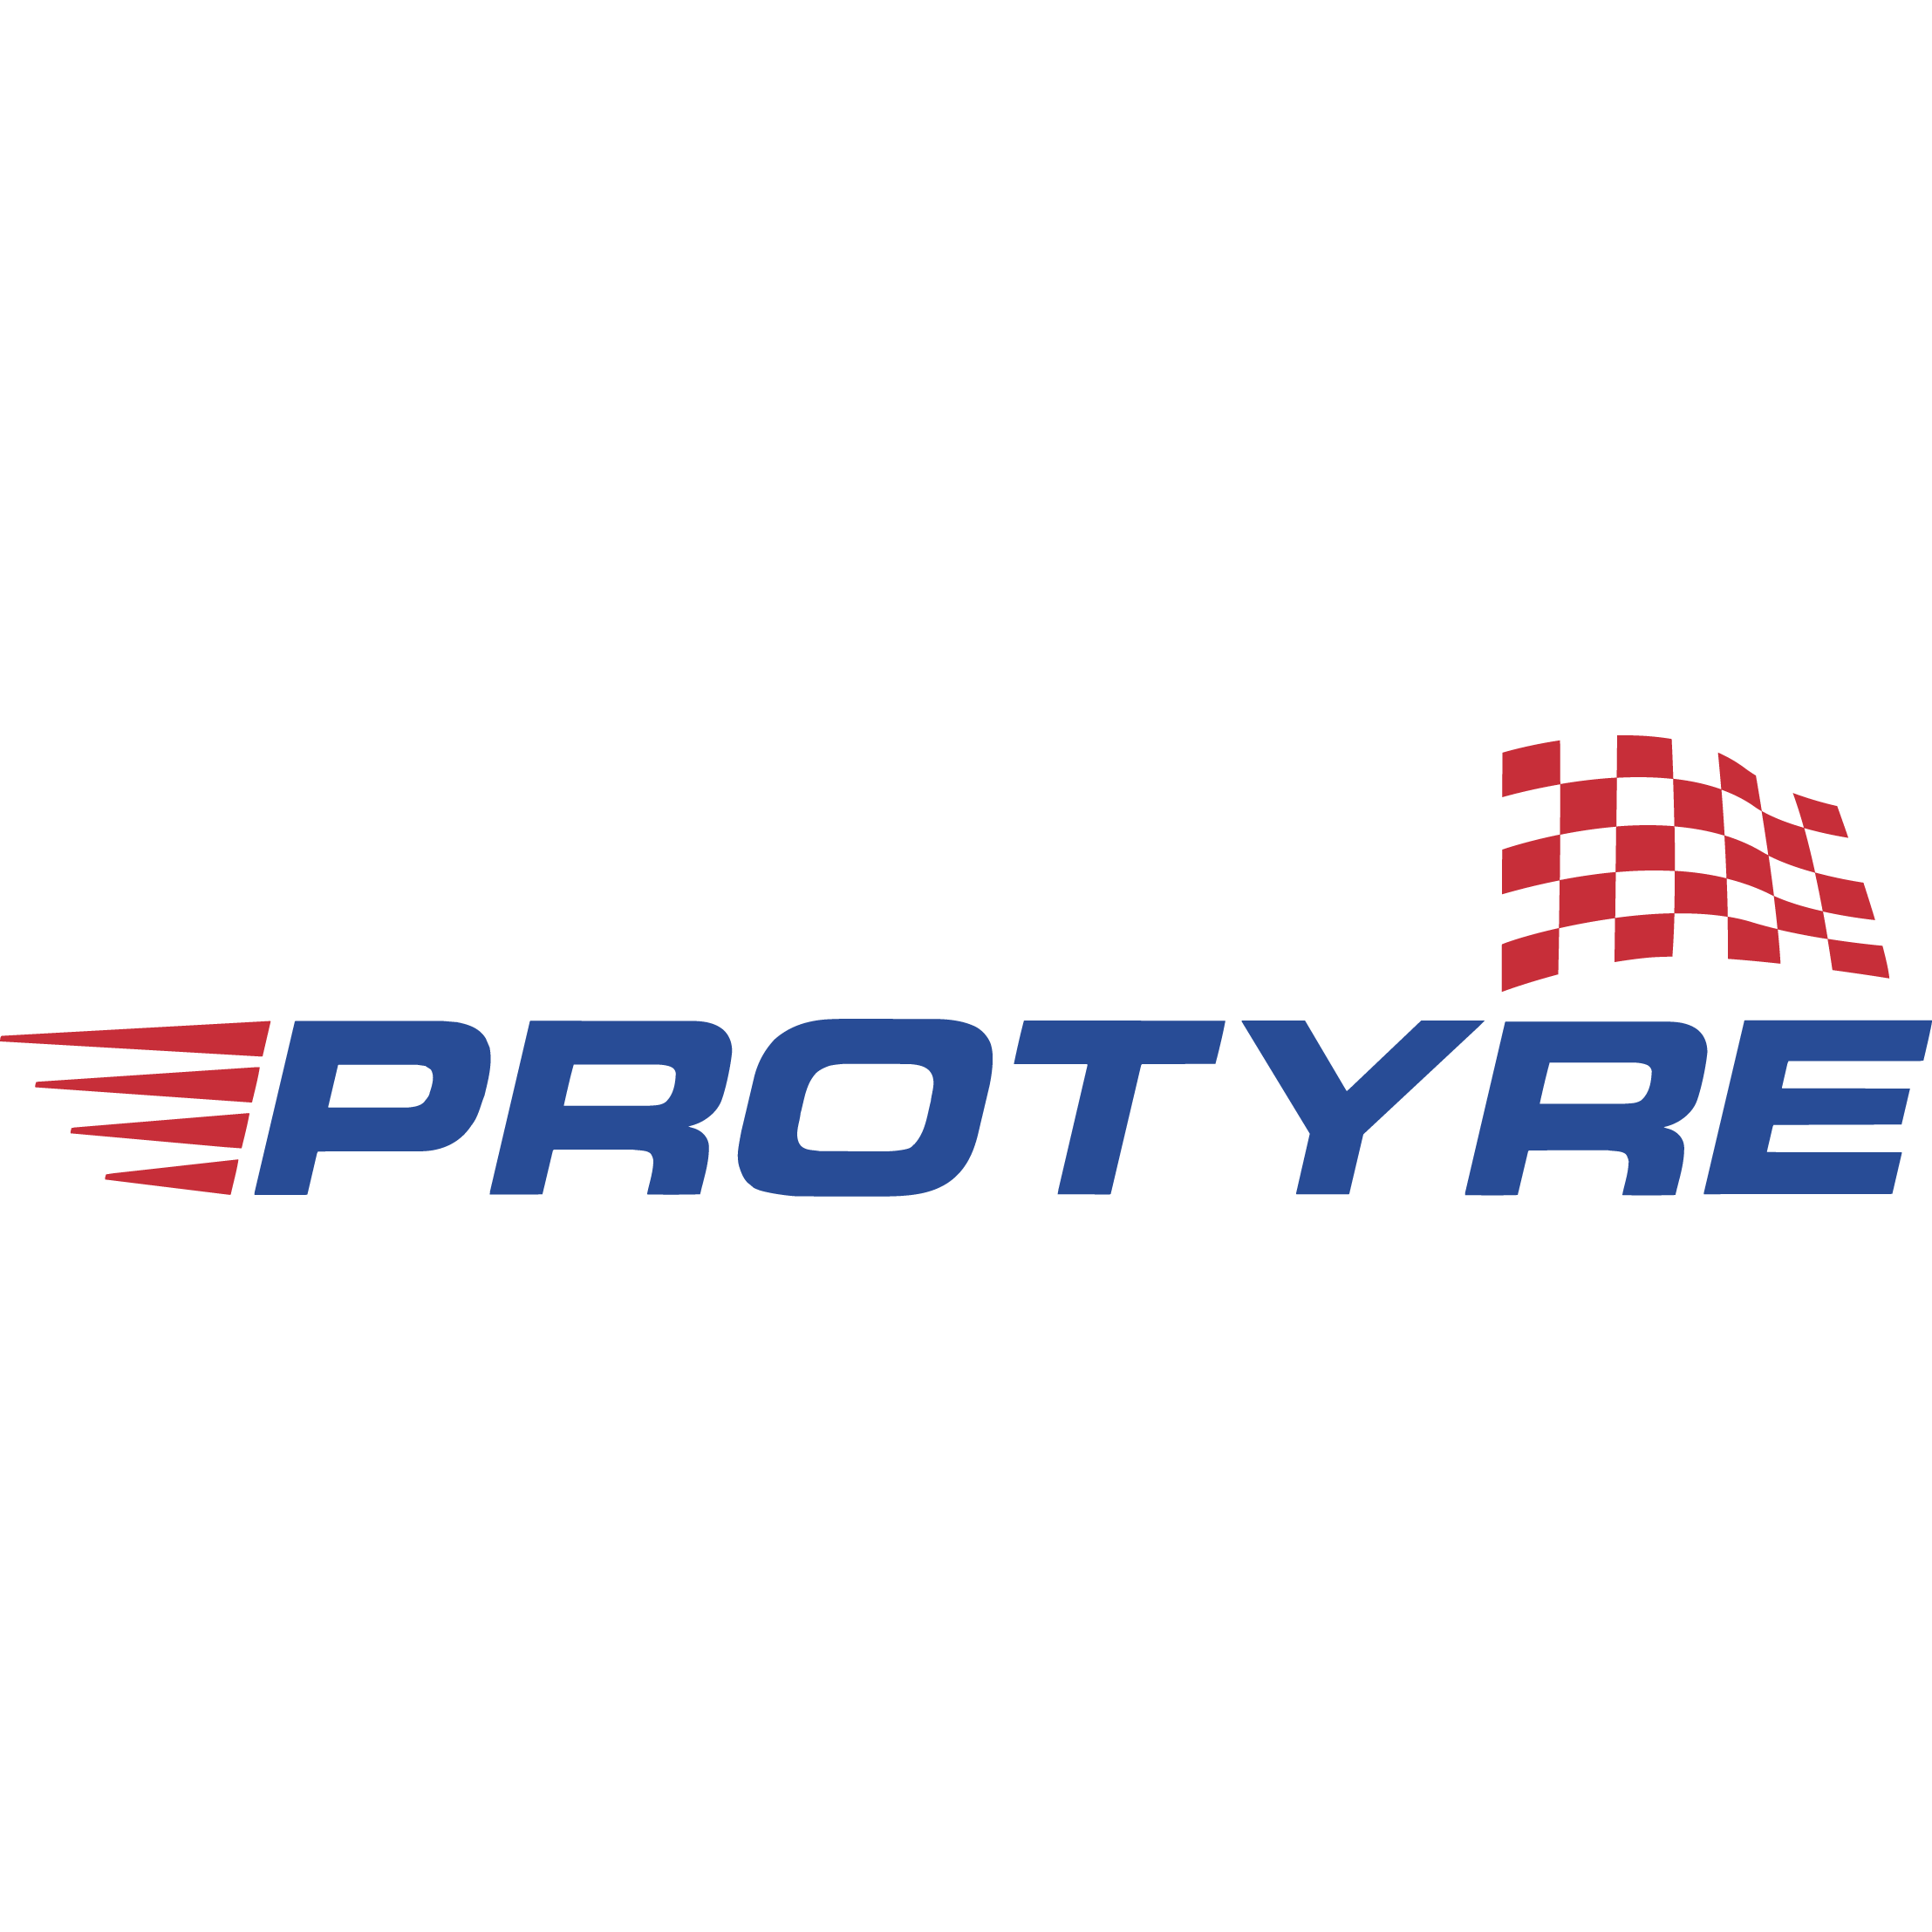 Protyre - Broadshires Way, Oxfordshire OX18 1AD - 01993 843987 | ShowMeLocal.com